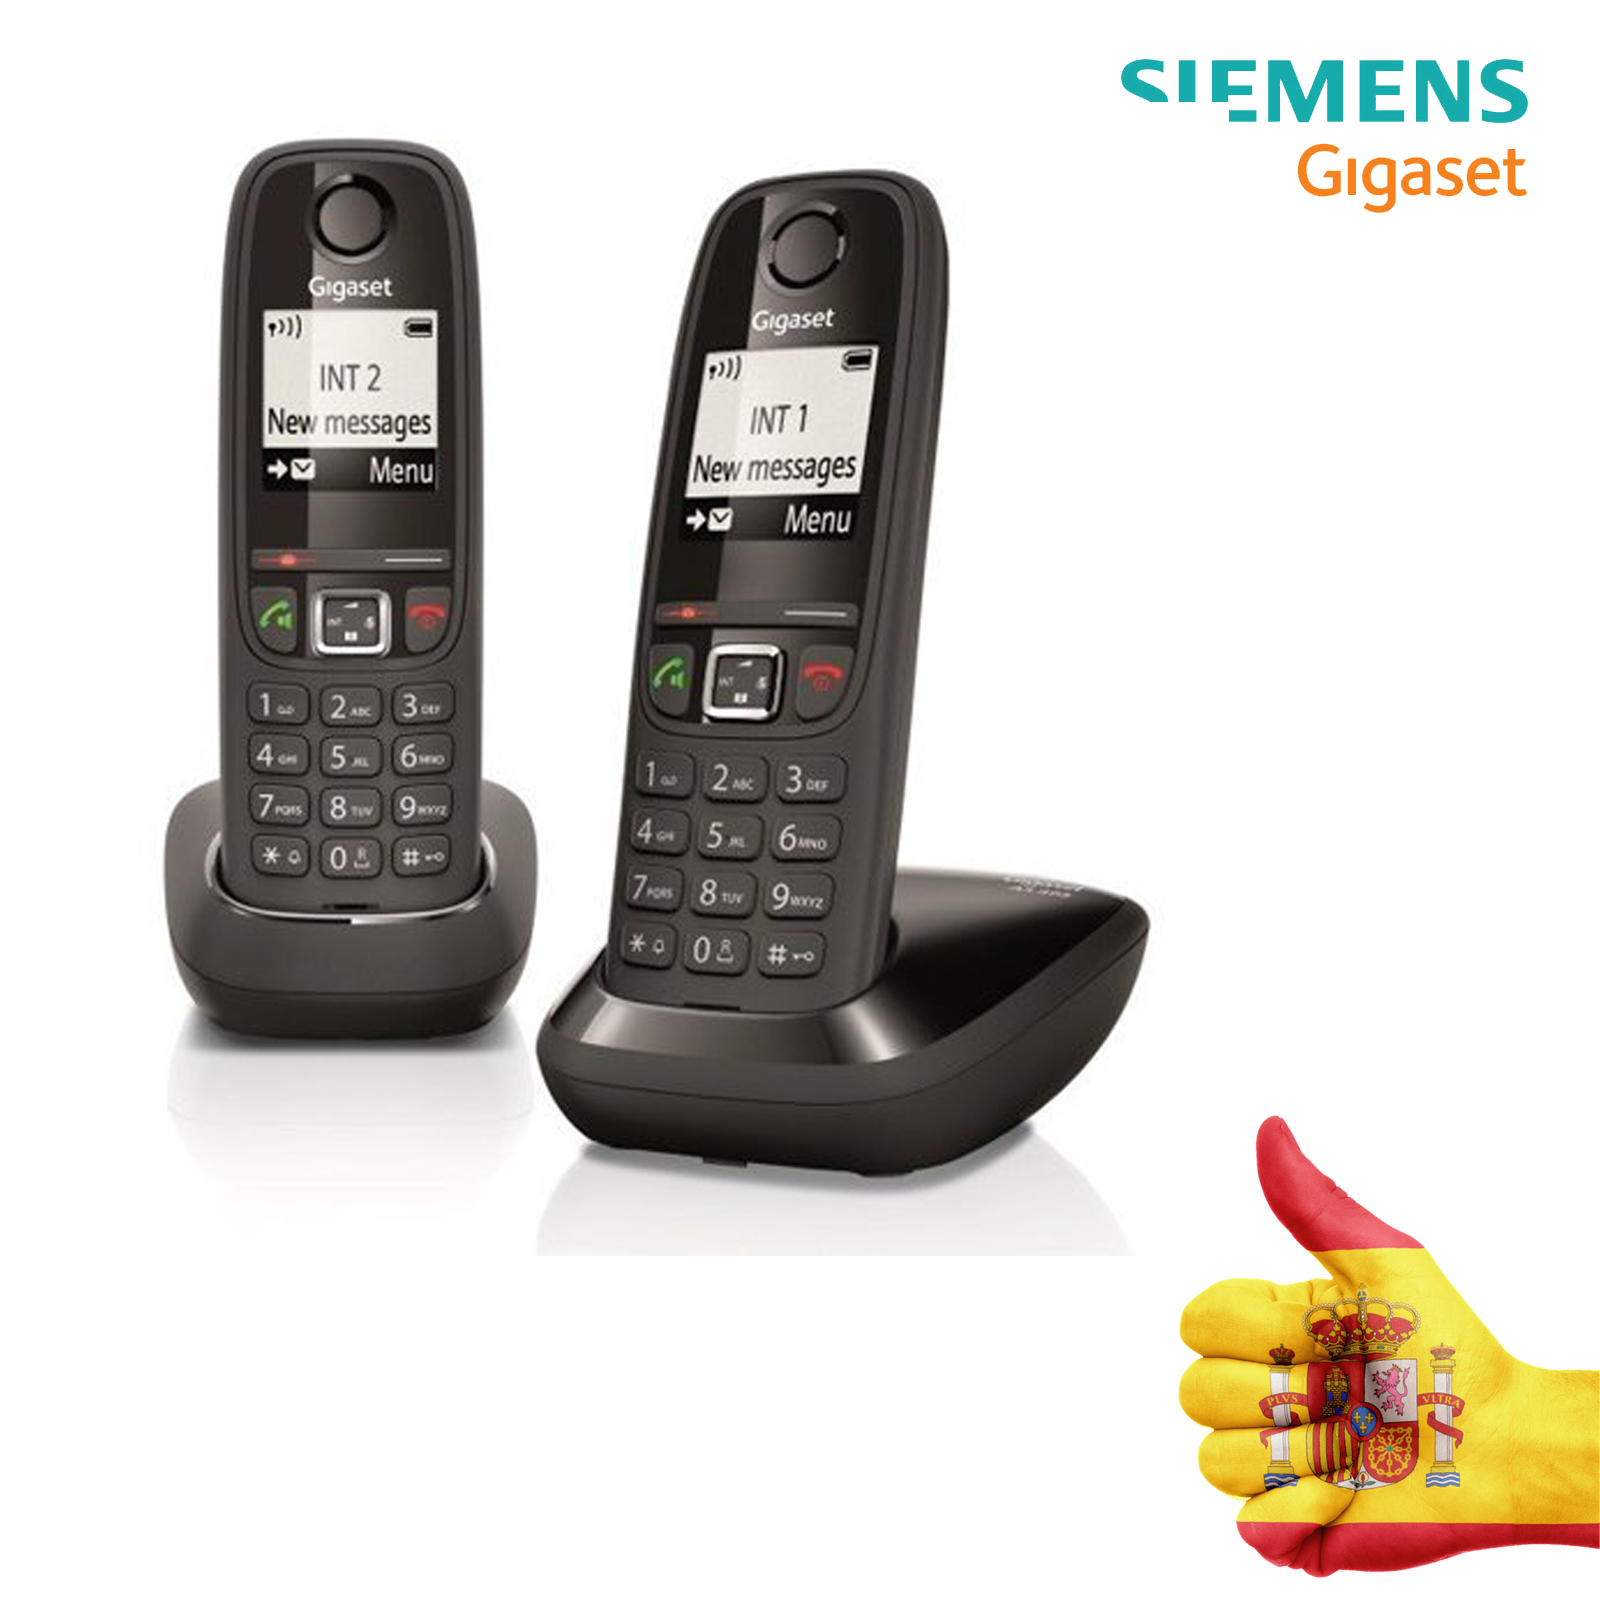 Cordless Phone DUO, Handsfree, Gigaset, 100 Contacts, Graphics Screen Illuminated 1.8